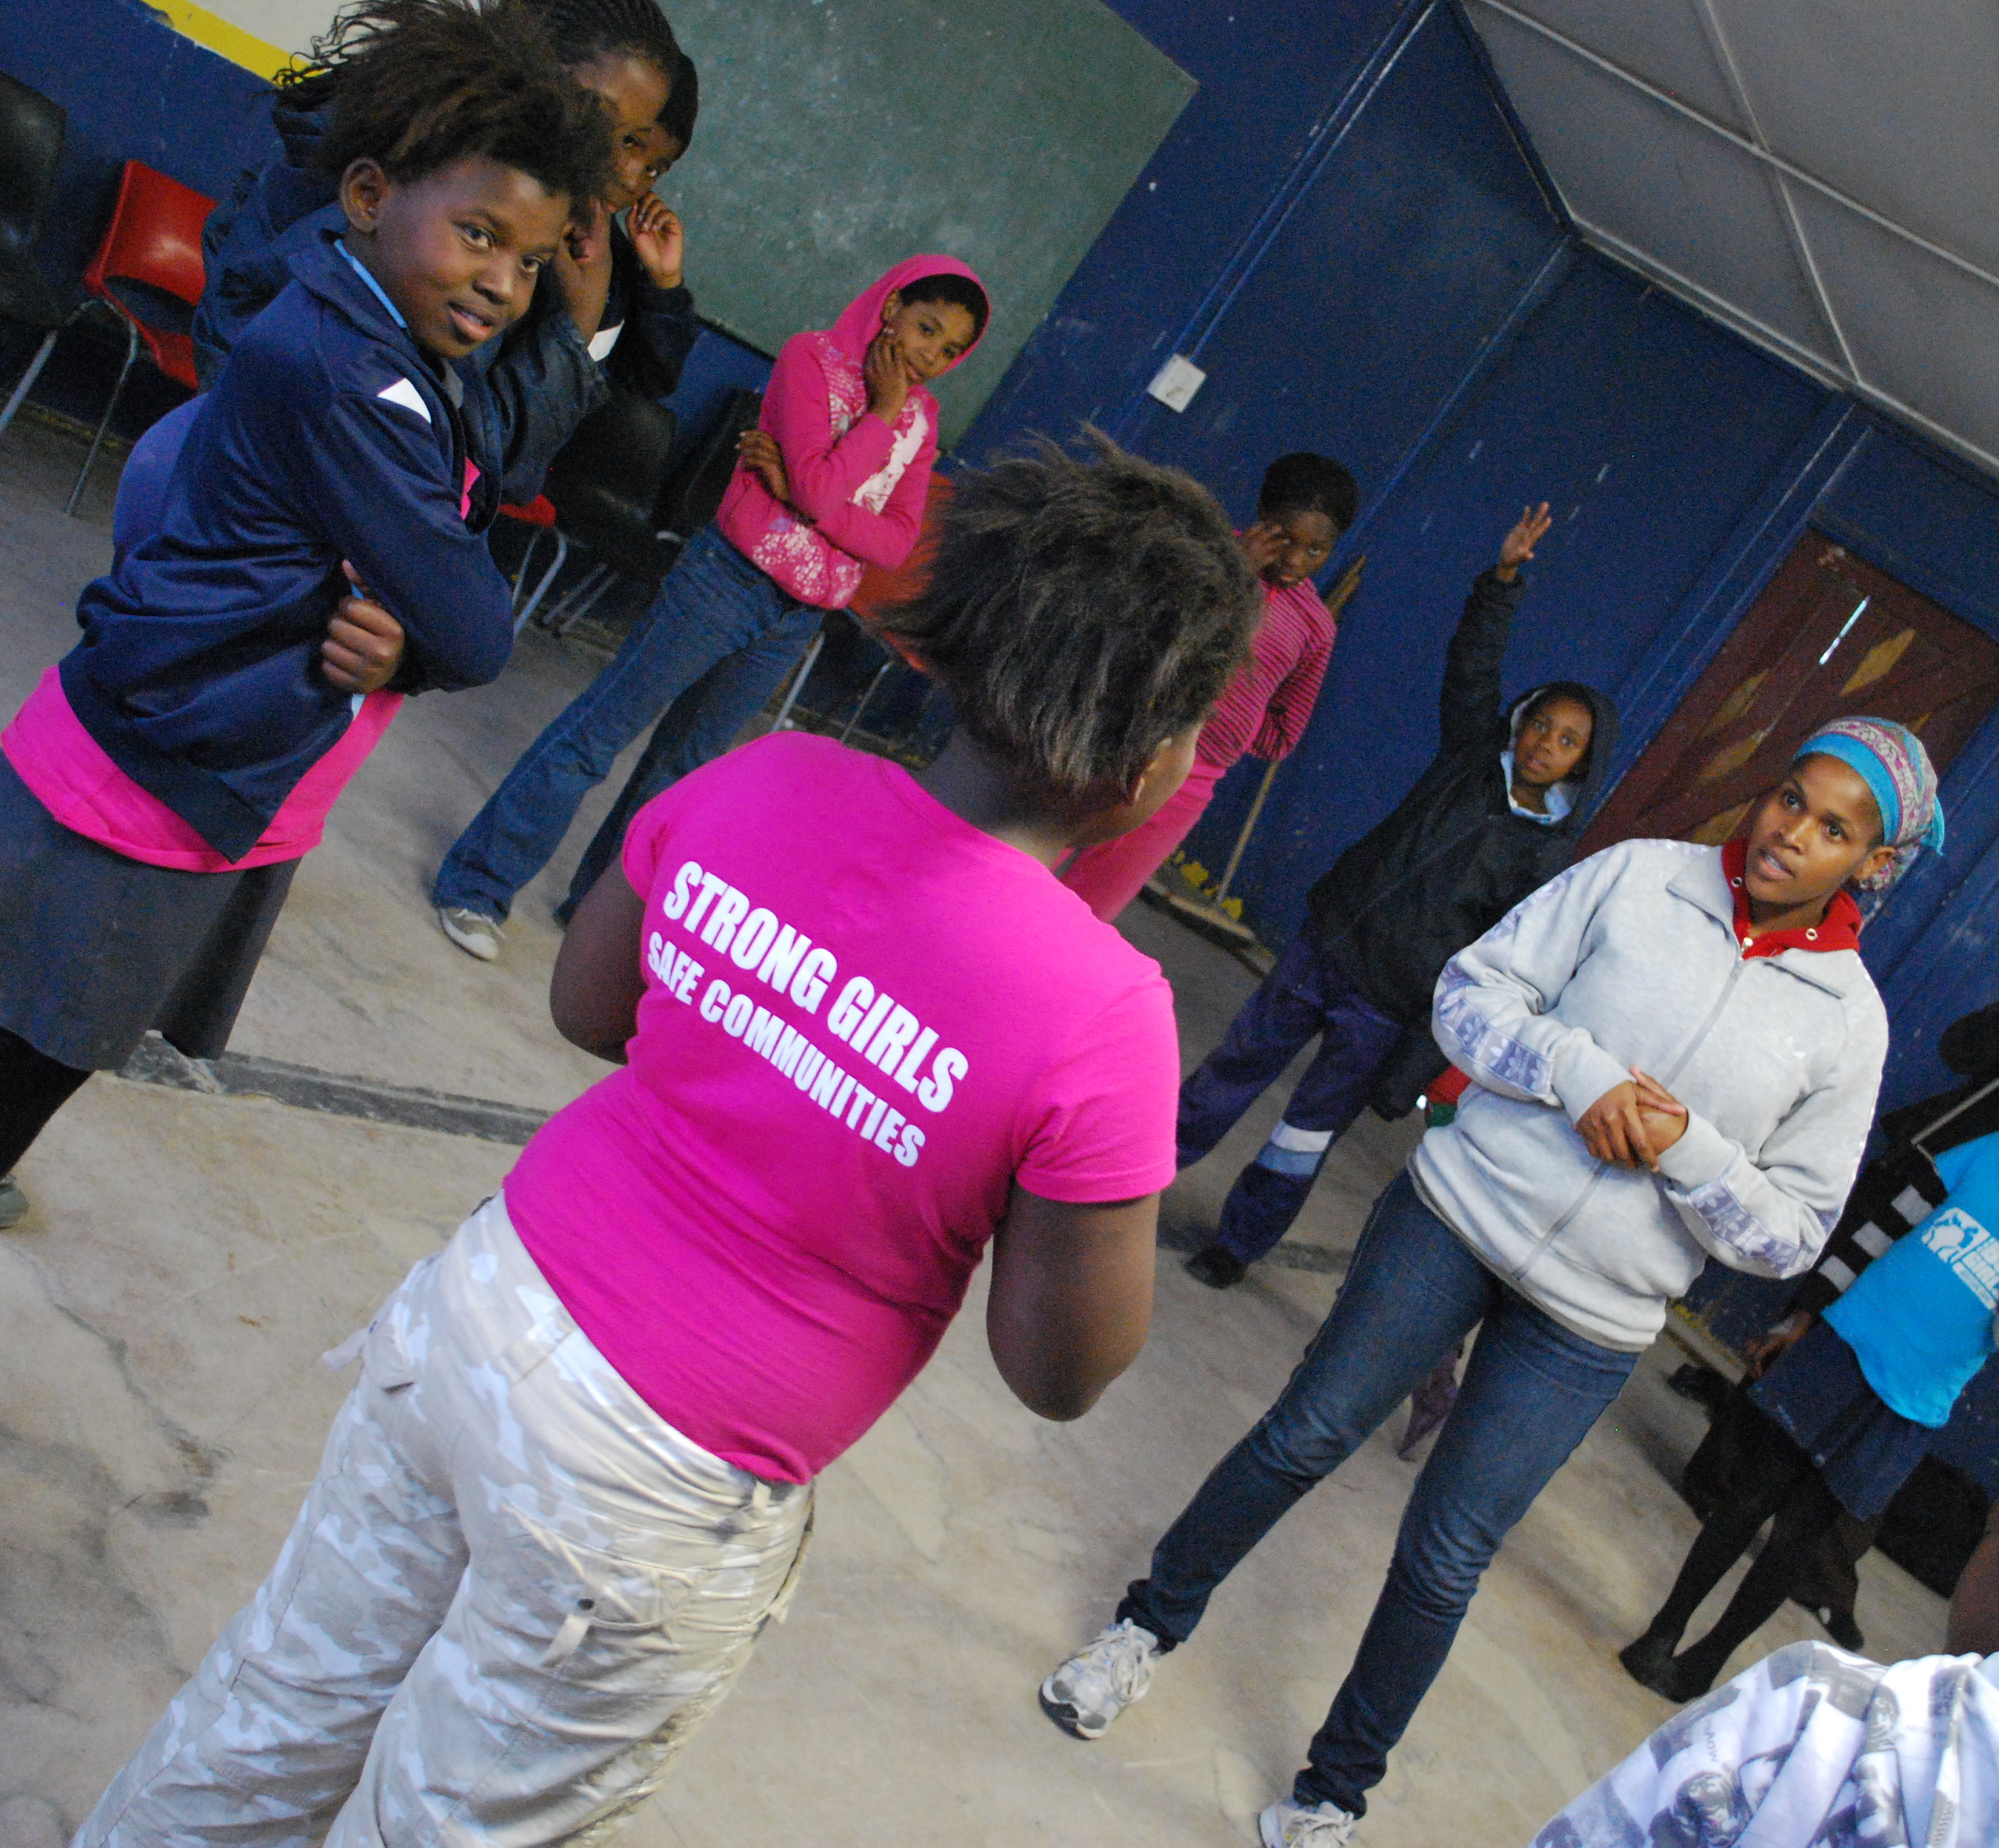 thumb_bg int group strong girls safe communities pink shirt_DSC_0017